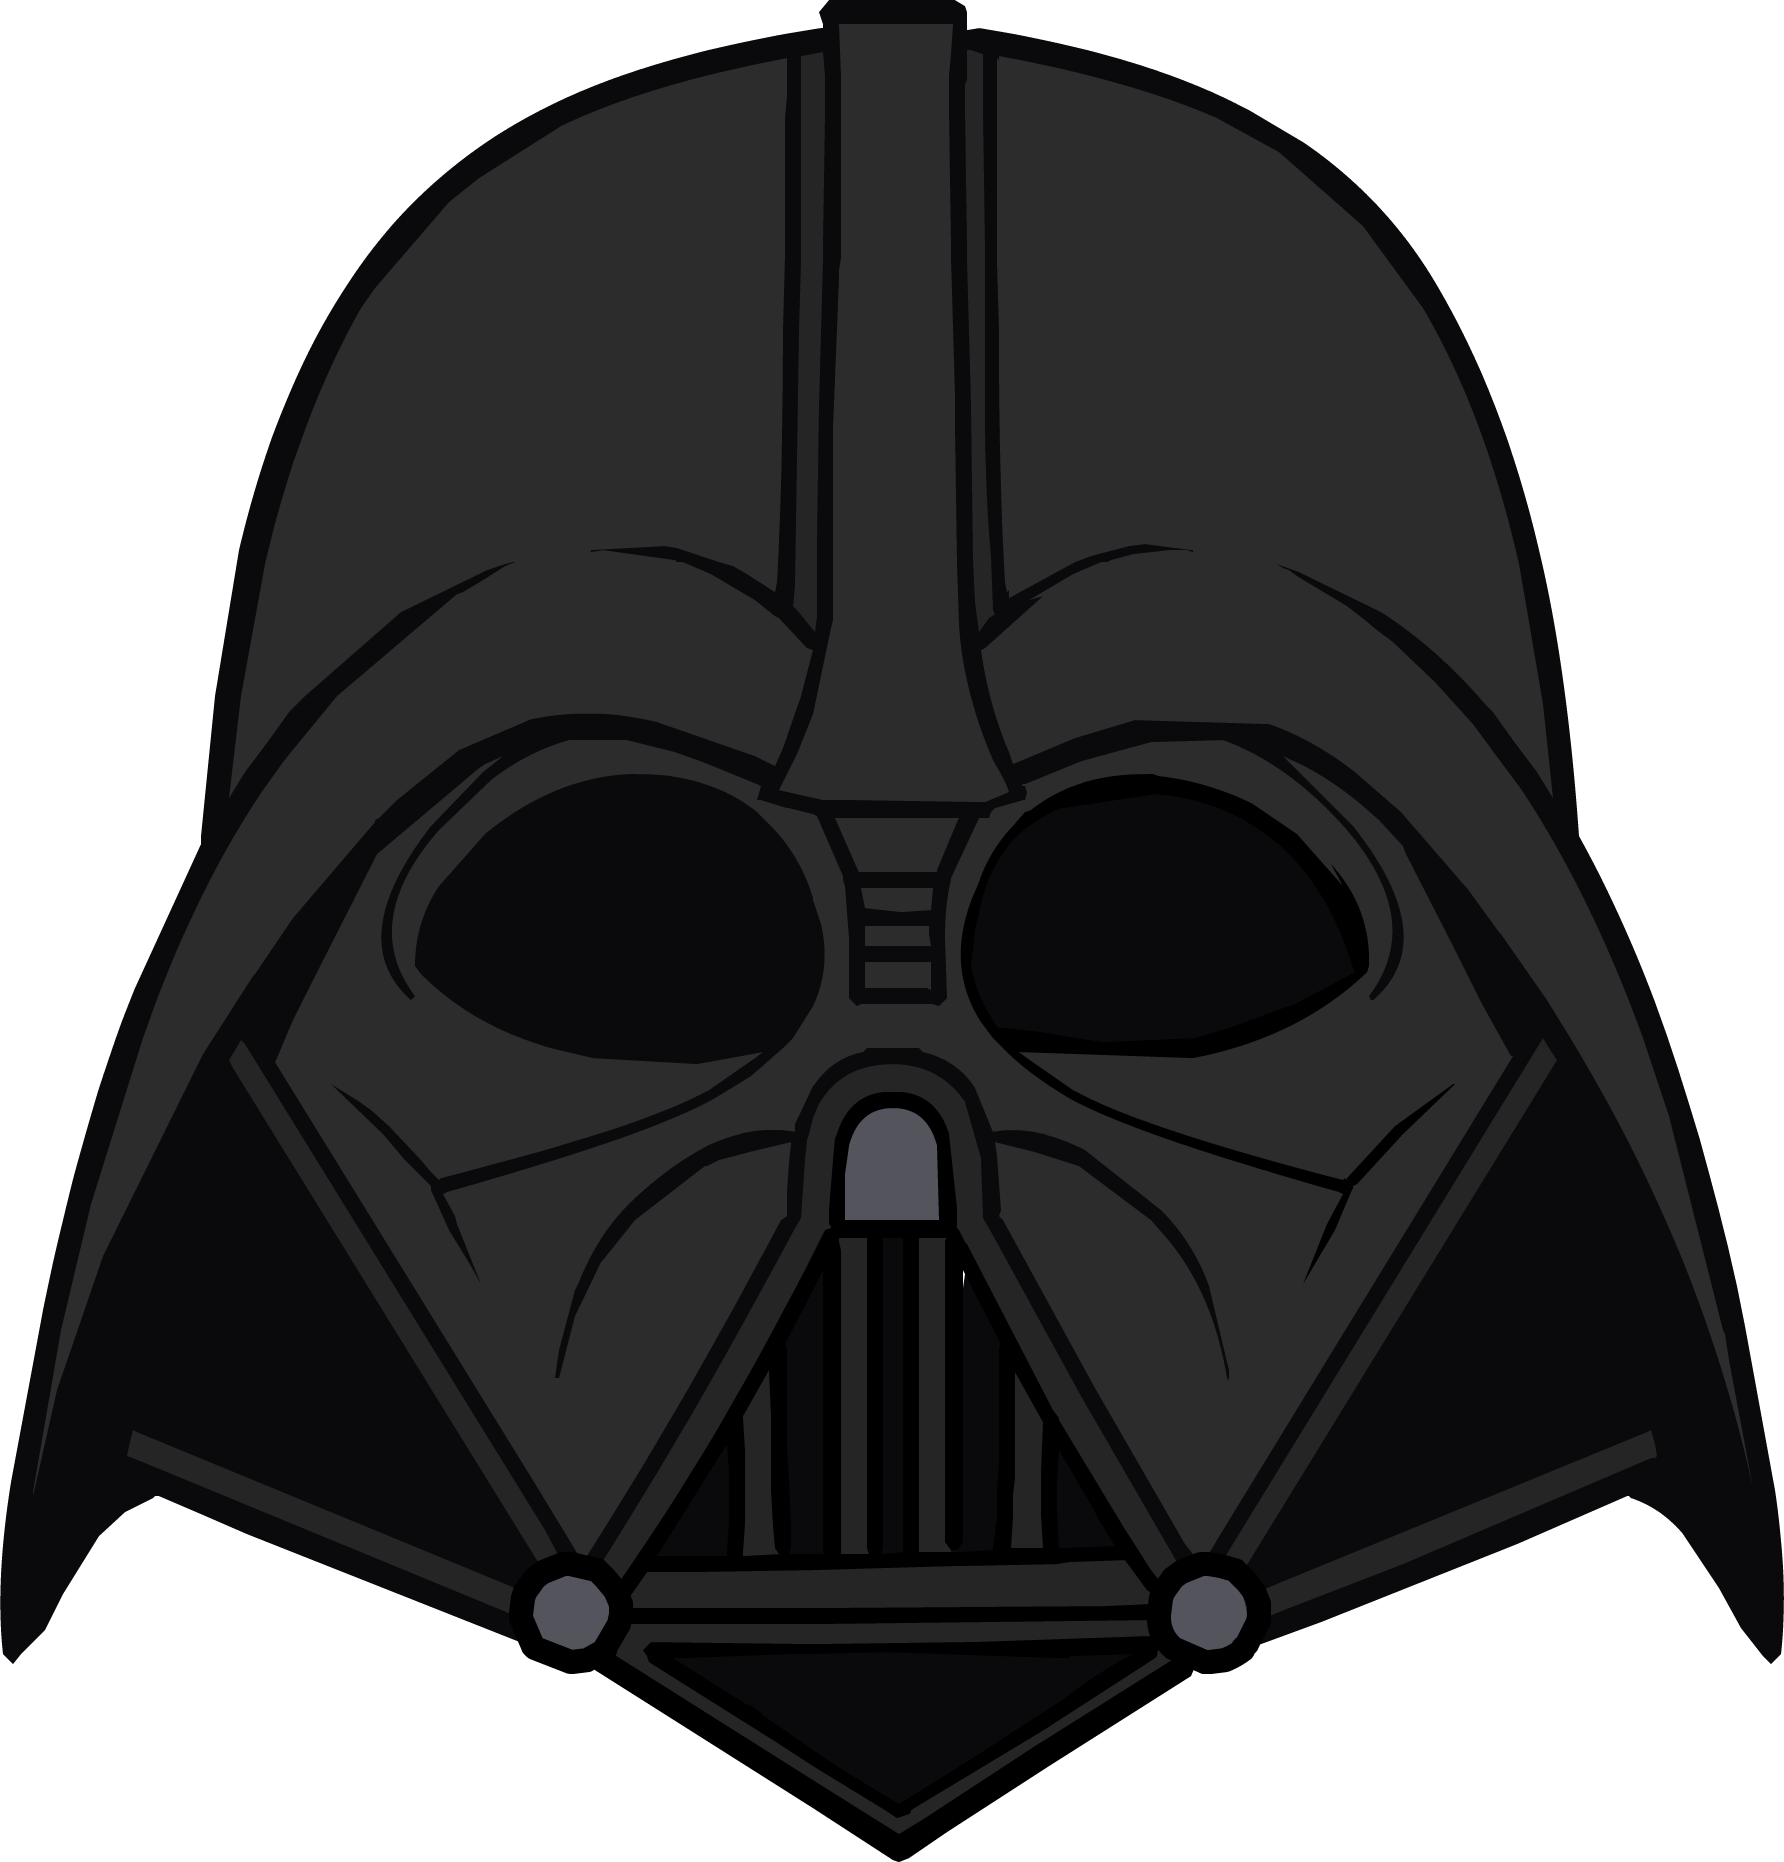 darth vader helmet club penguin wiki fandom powered by. Black Bedroom Furniture Sets. Home Design Ideas